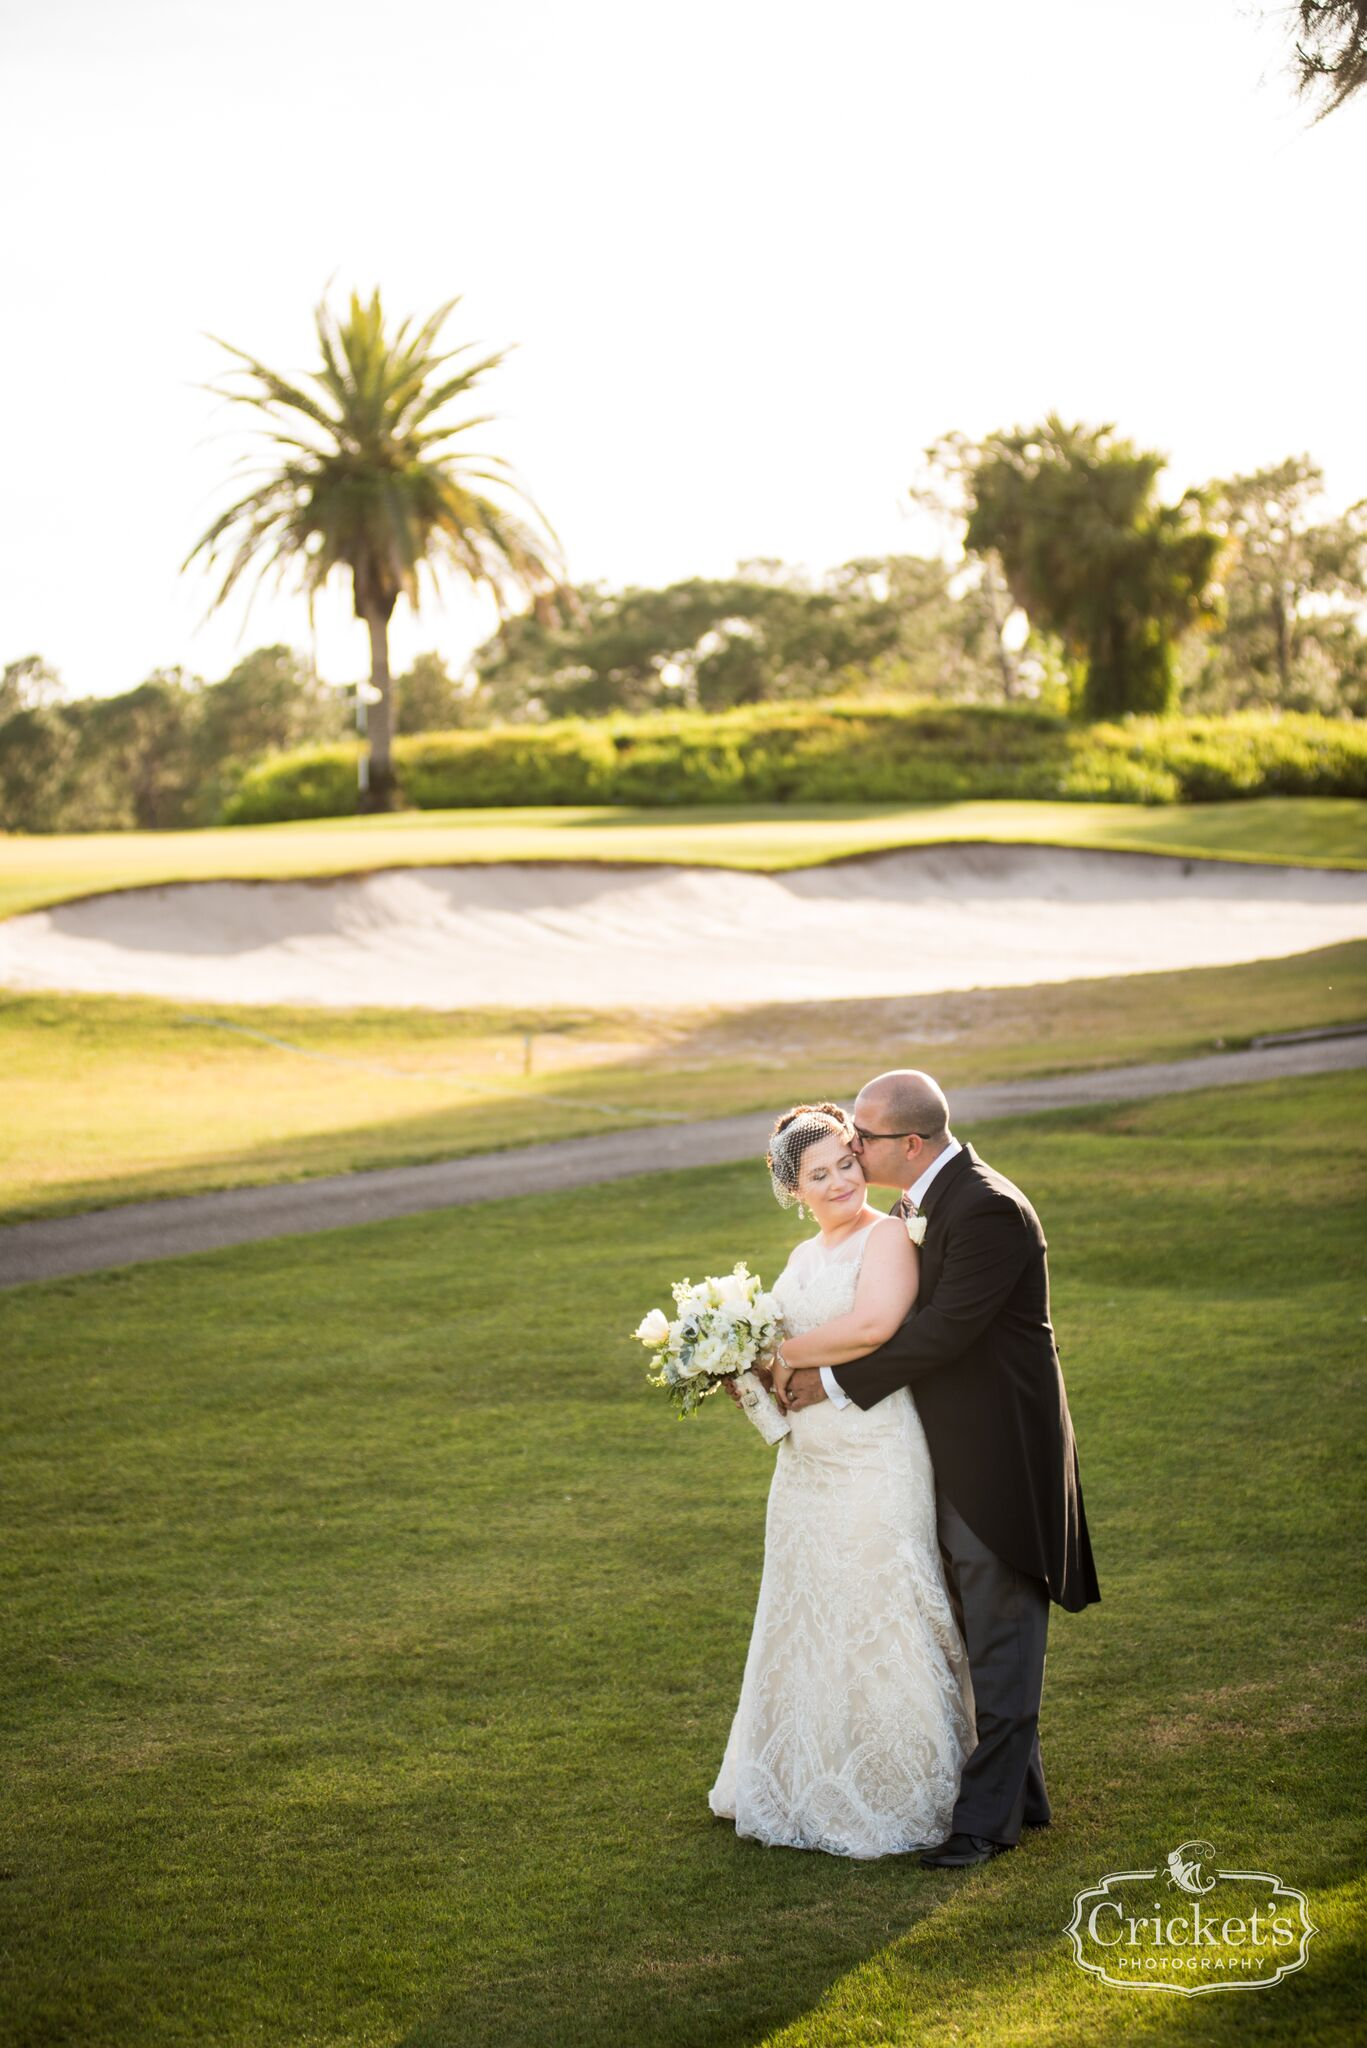 Groom embracing bride from behind on Mission Inn golf course